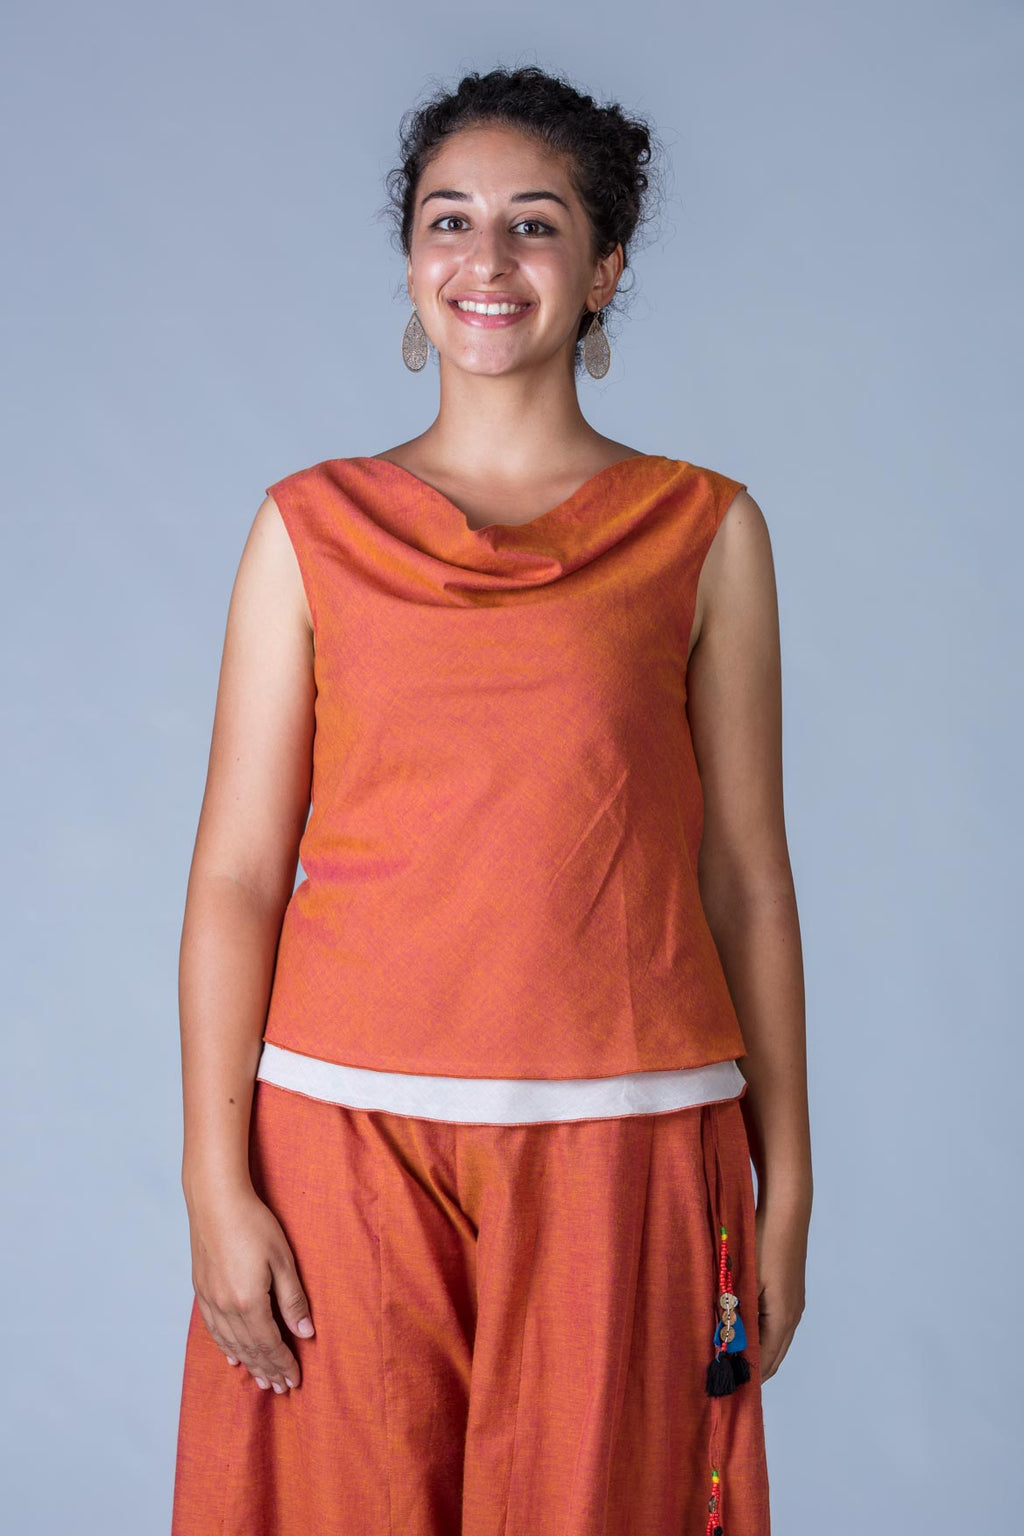 Orange Organic Cotton Top - COWL - Upasana Design Studio